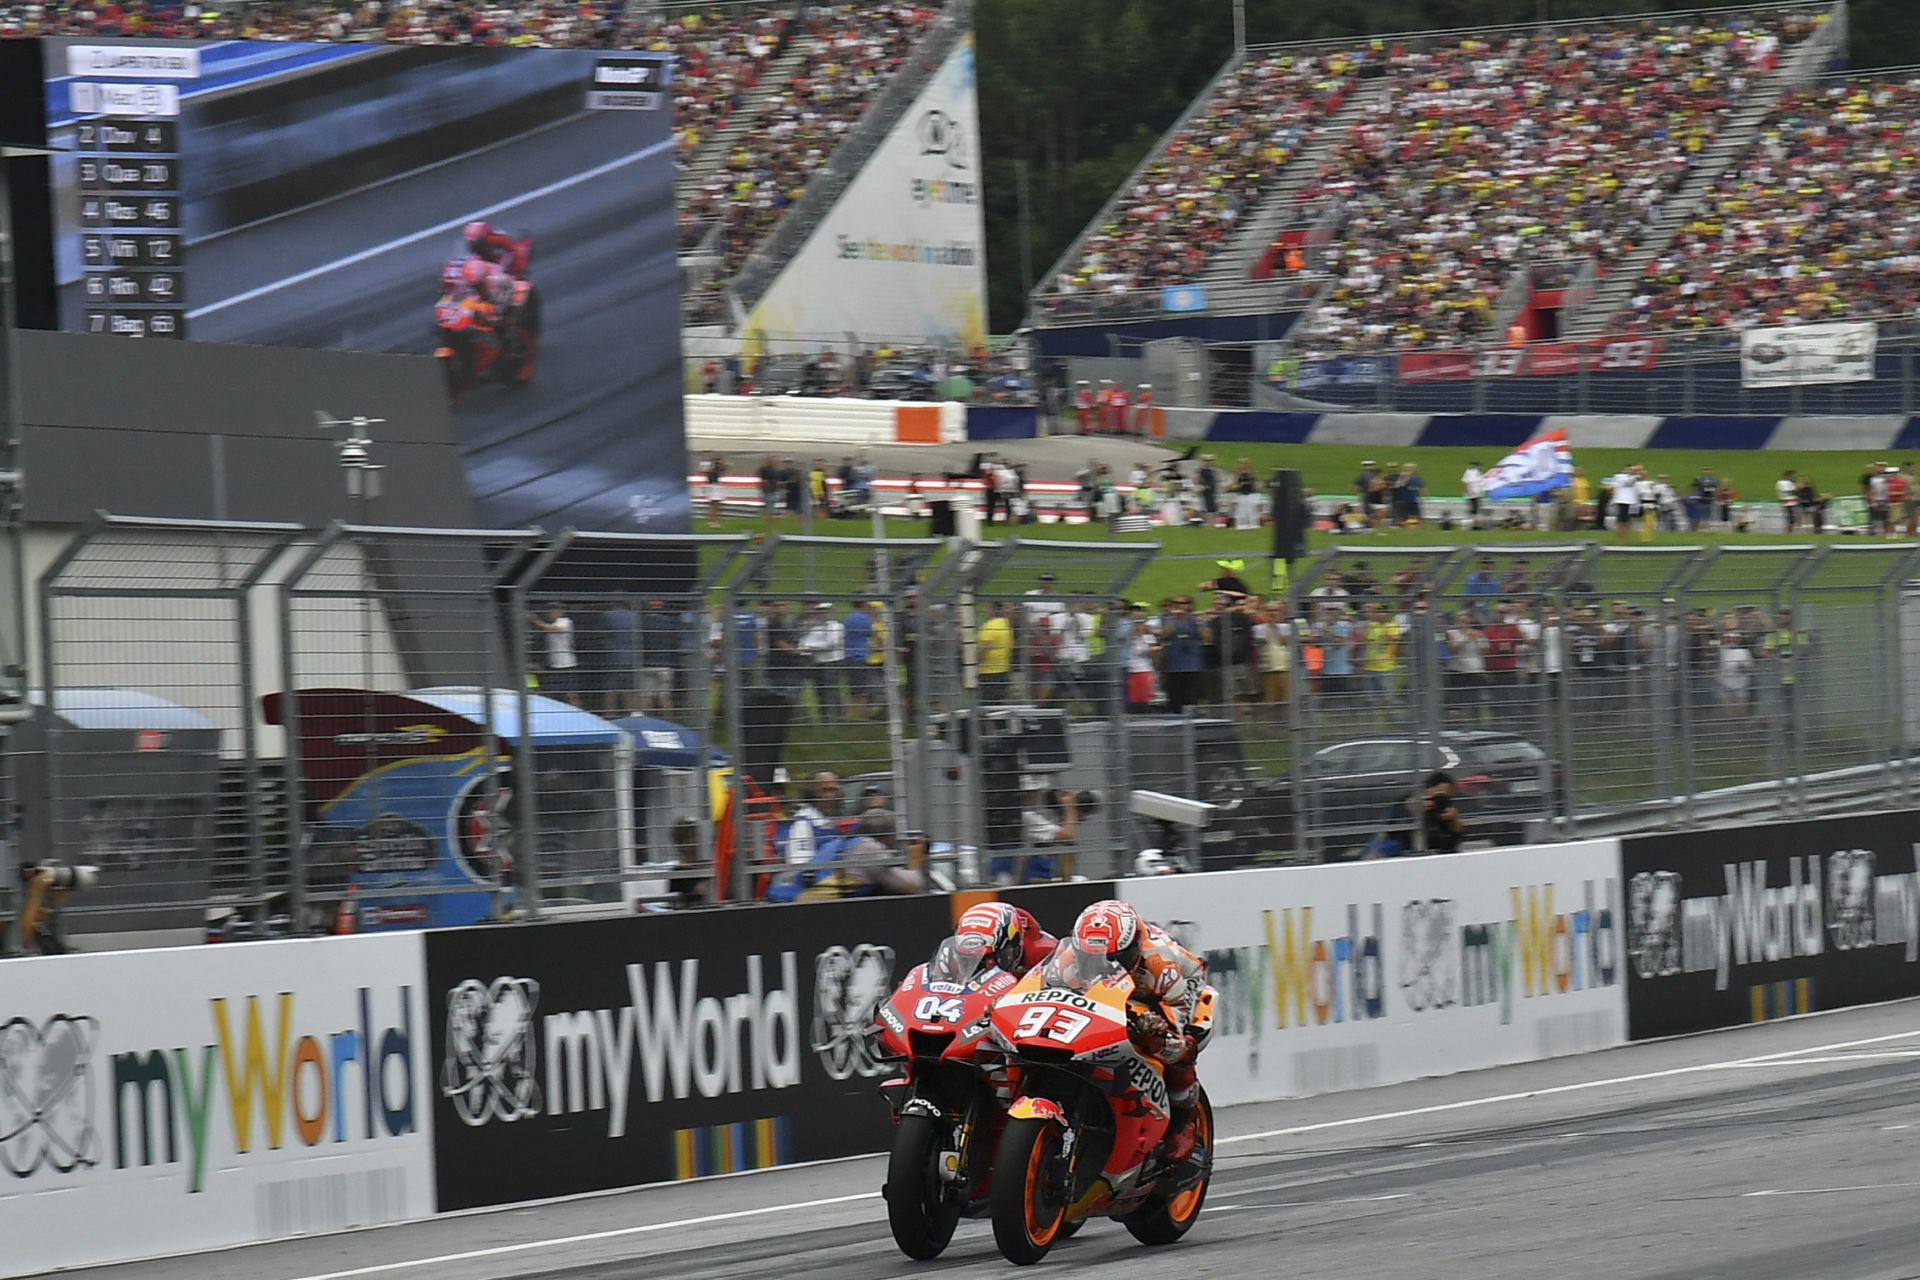 Marc Marquez (93) and Andrea Dovizioso (04) battled to the finish of the 2019 Austrian Grand Prix at the Red Bull Ring, in Austria. Photo courtesy of Dorna/www.motogp.